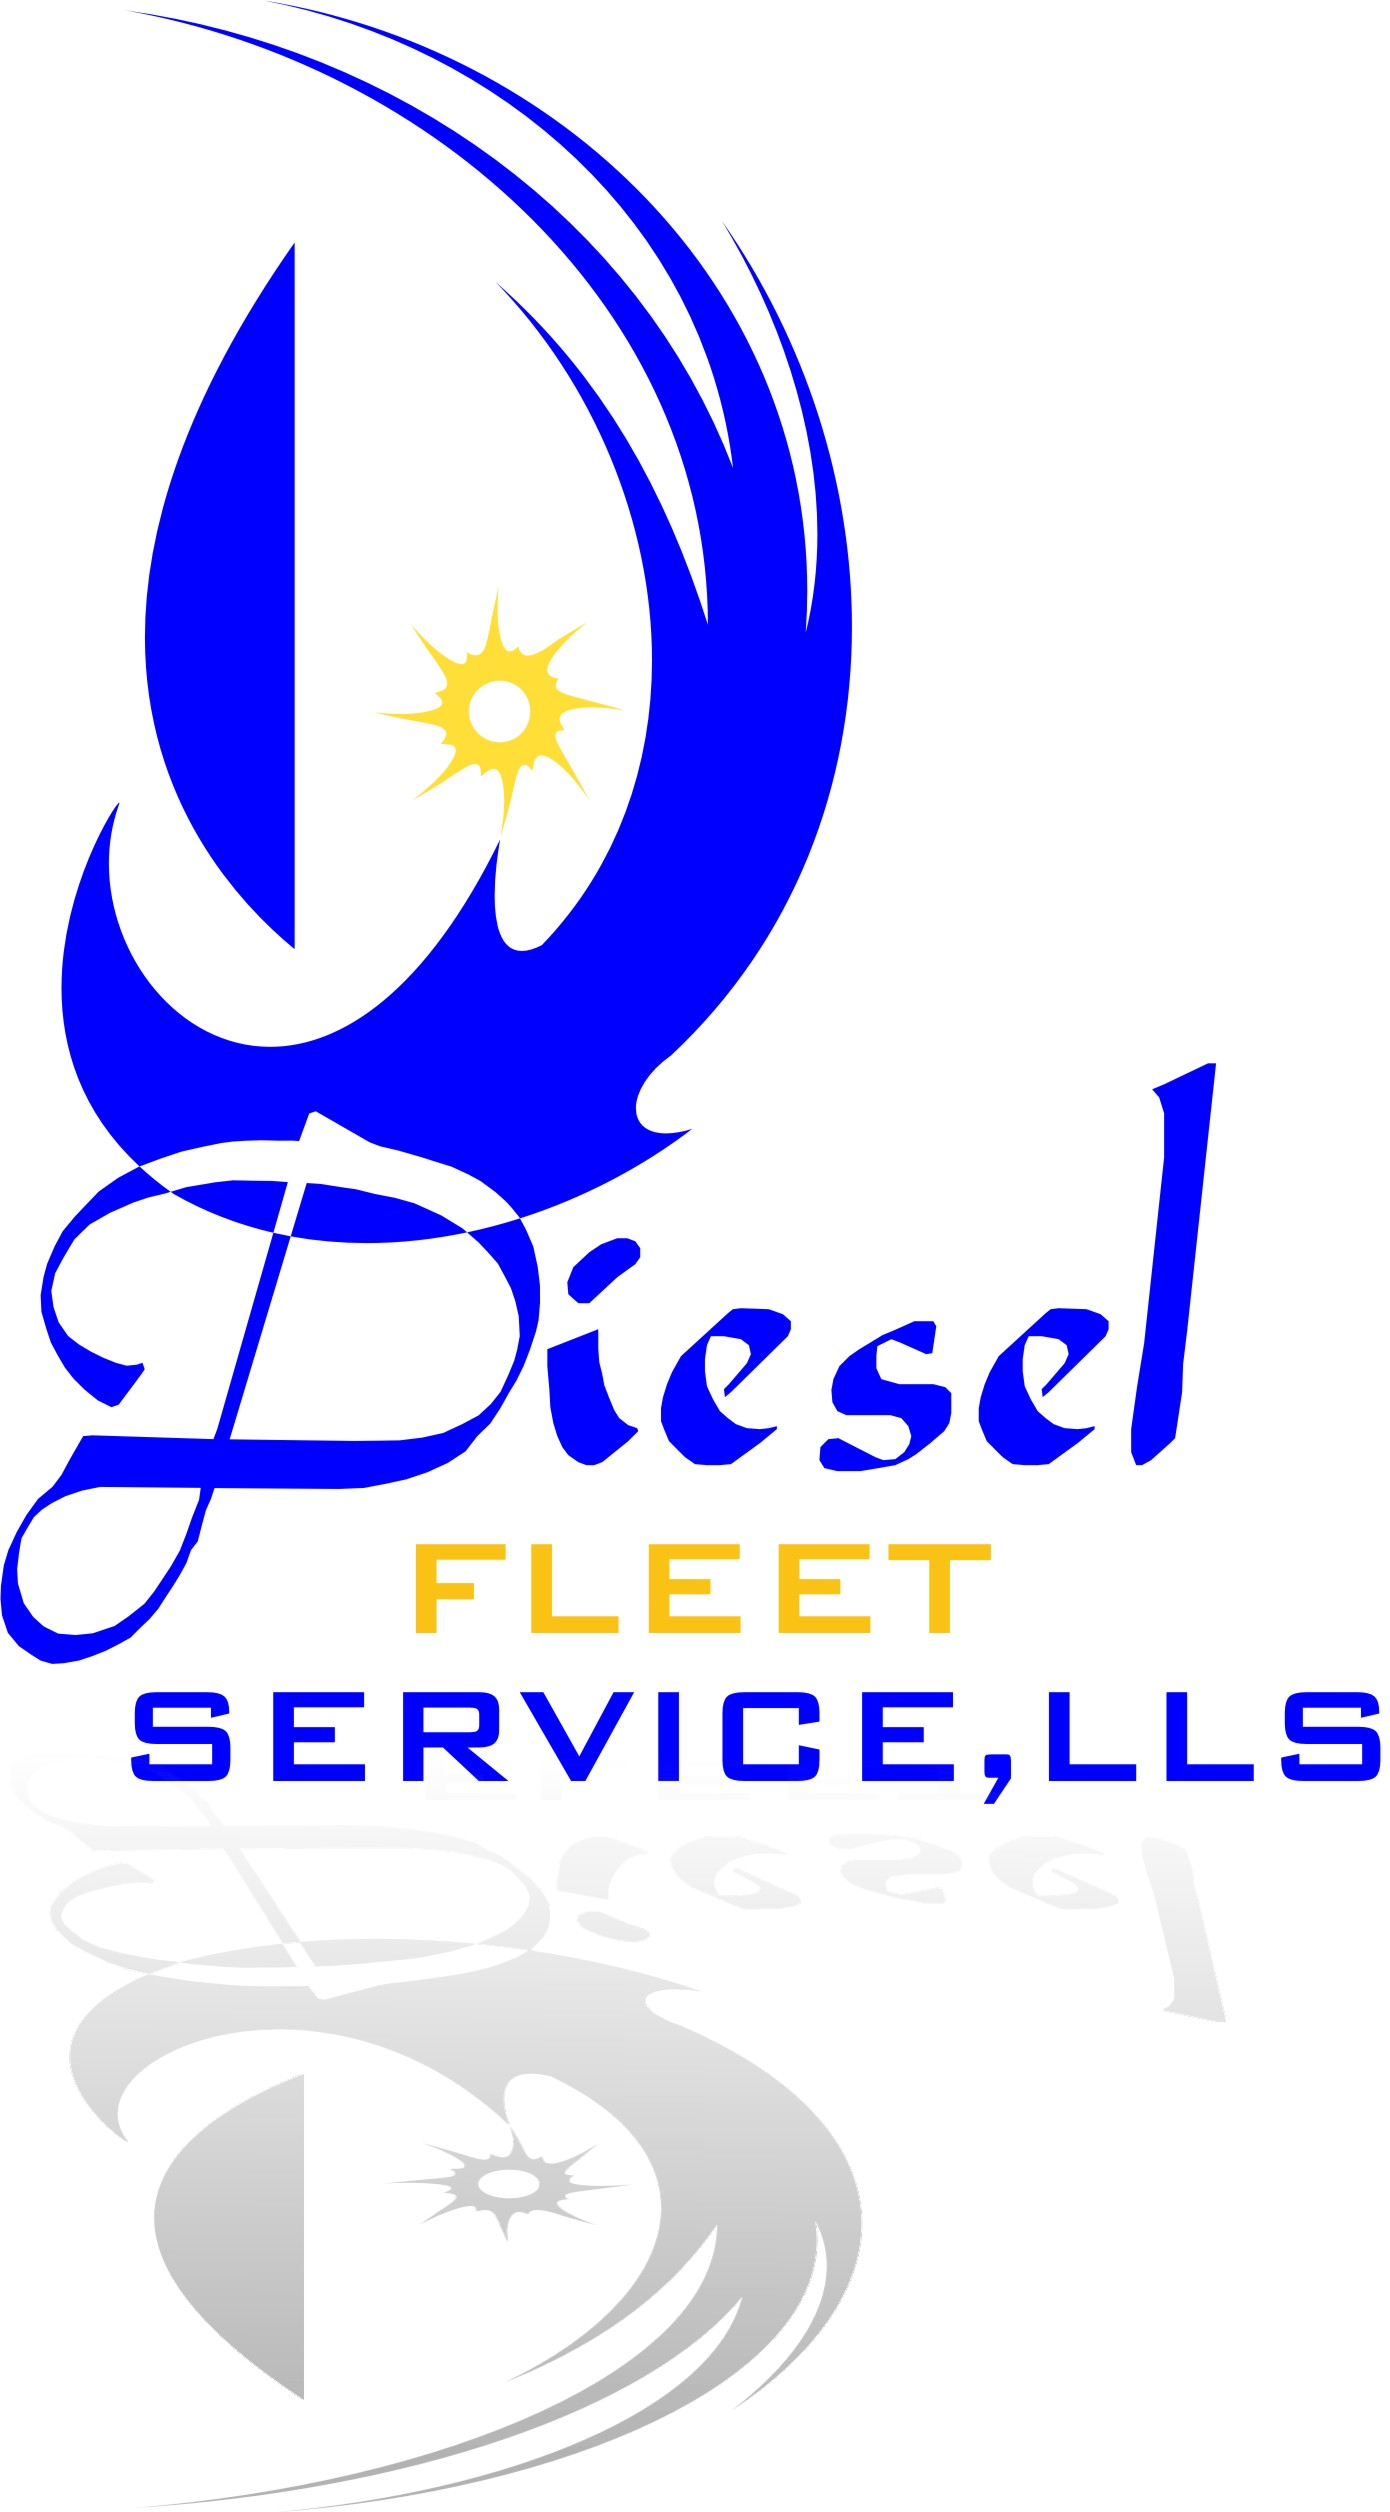 Logo Design by Korsunov Oleg - Entry No. 34 in the Logo Design Contest Artistic Logo Design for Diesel Fleet Service, LLC.